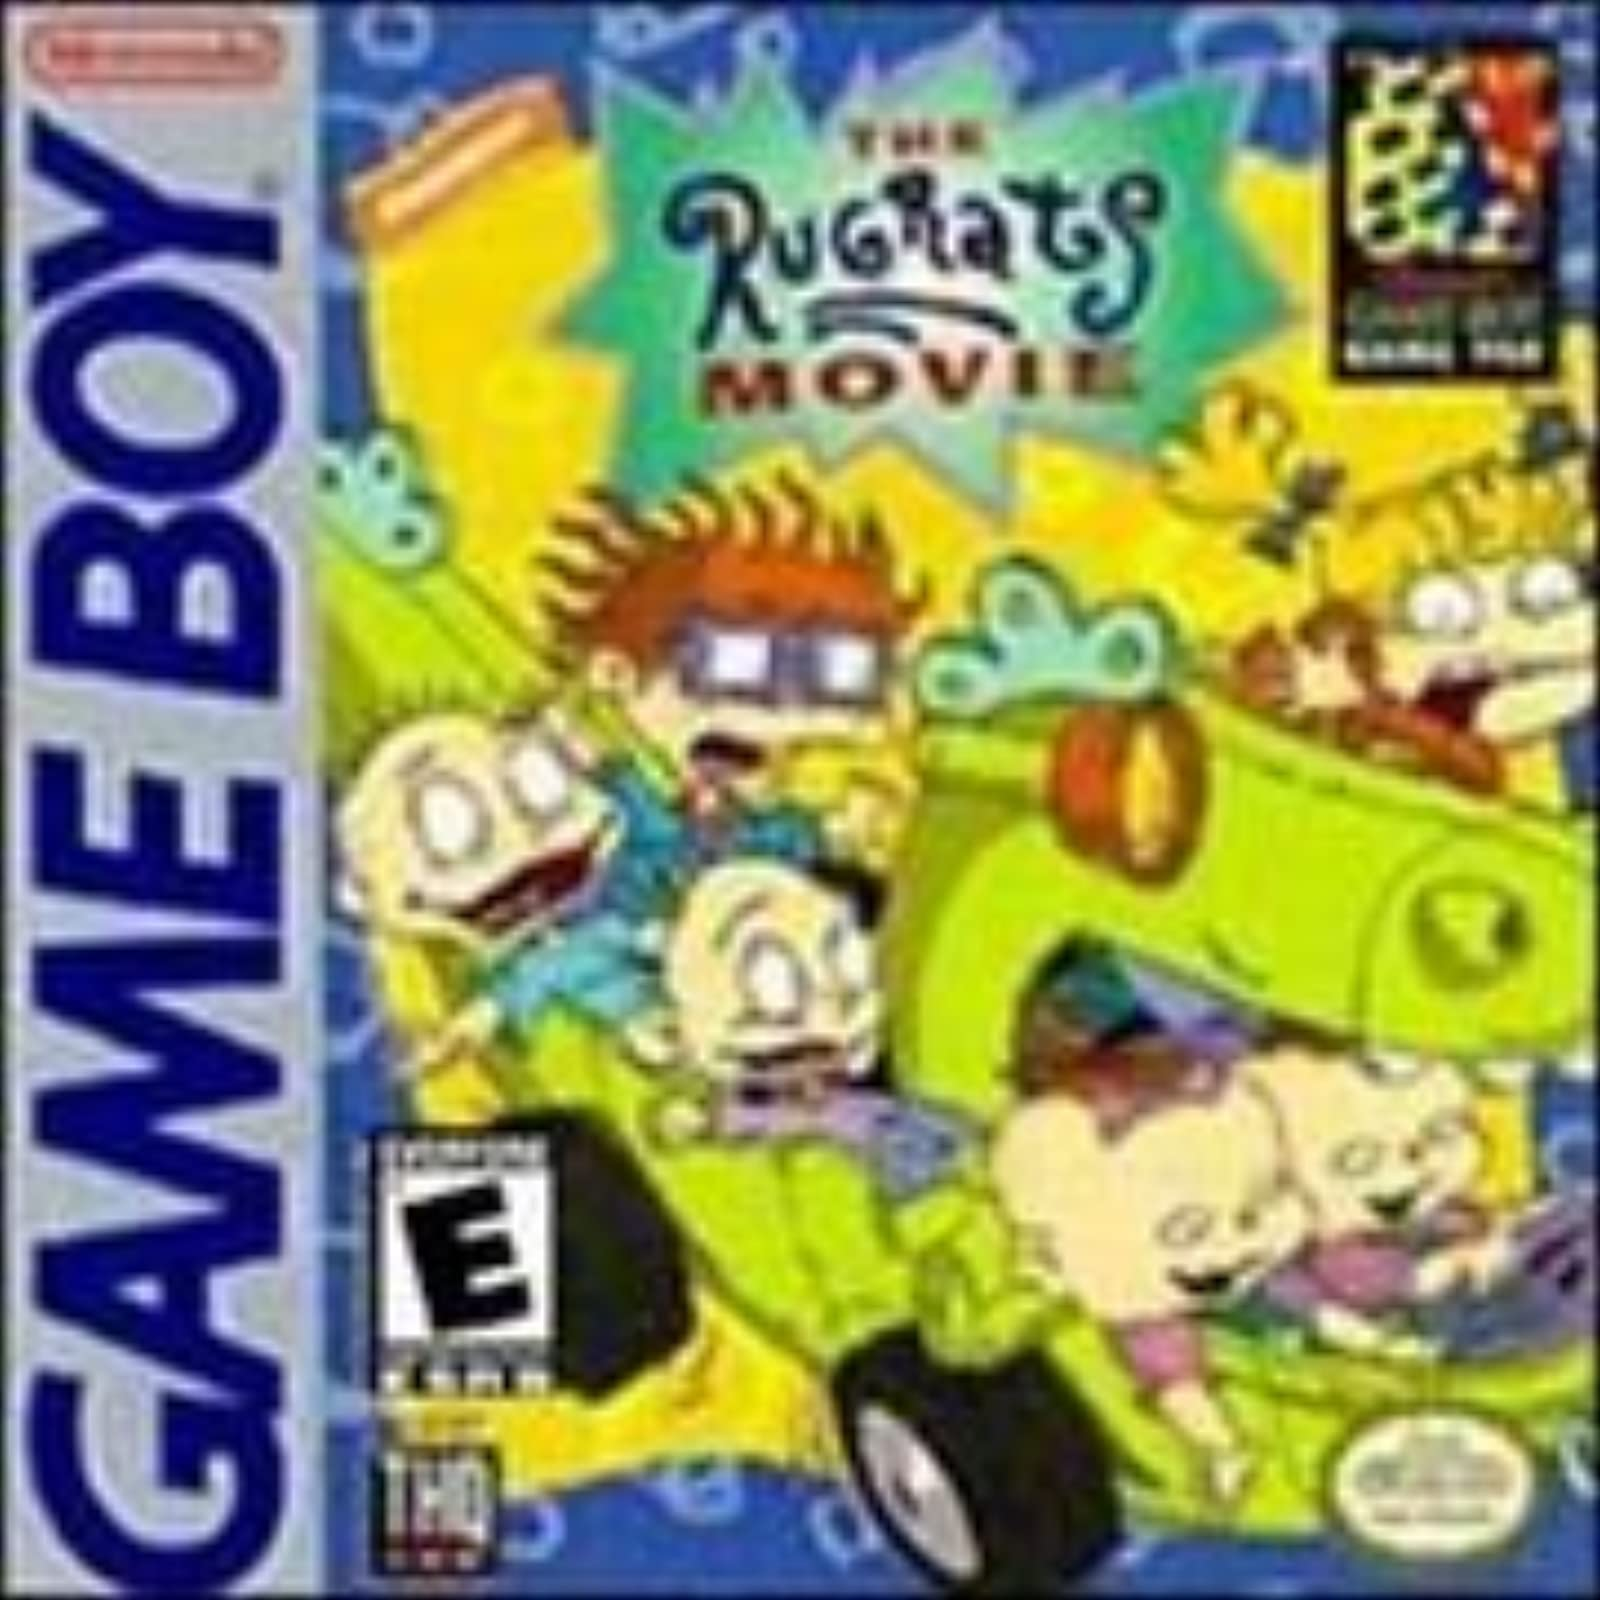 The Rugrats Movie On Gameboy